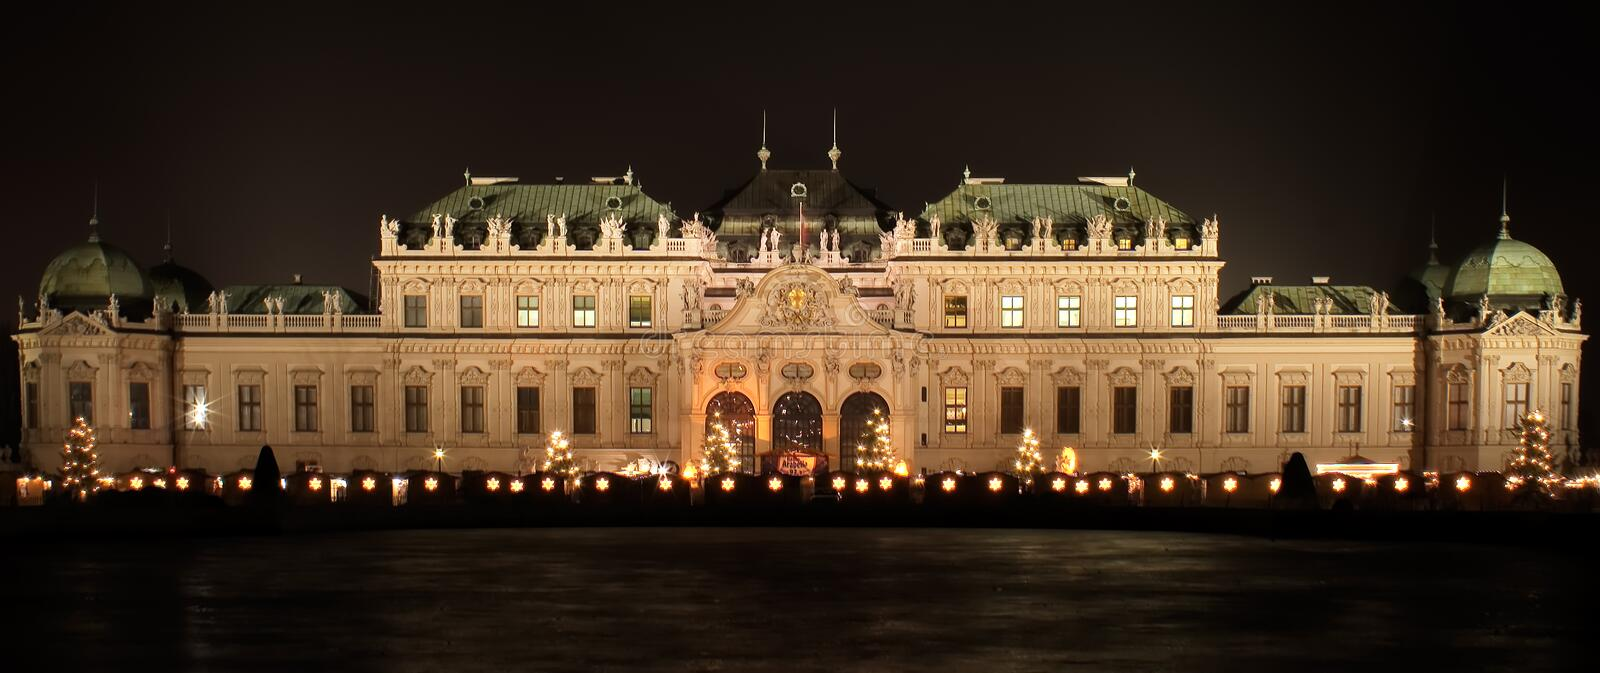 Belvedere. A nightshot of the Belvedere Palace in Vienna. In front of the palace the decorations of a Christmas Market can be seen. The photo was composed from stock photos